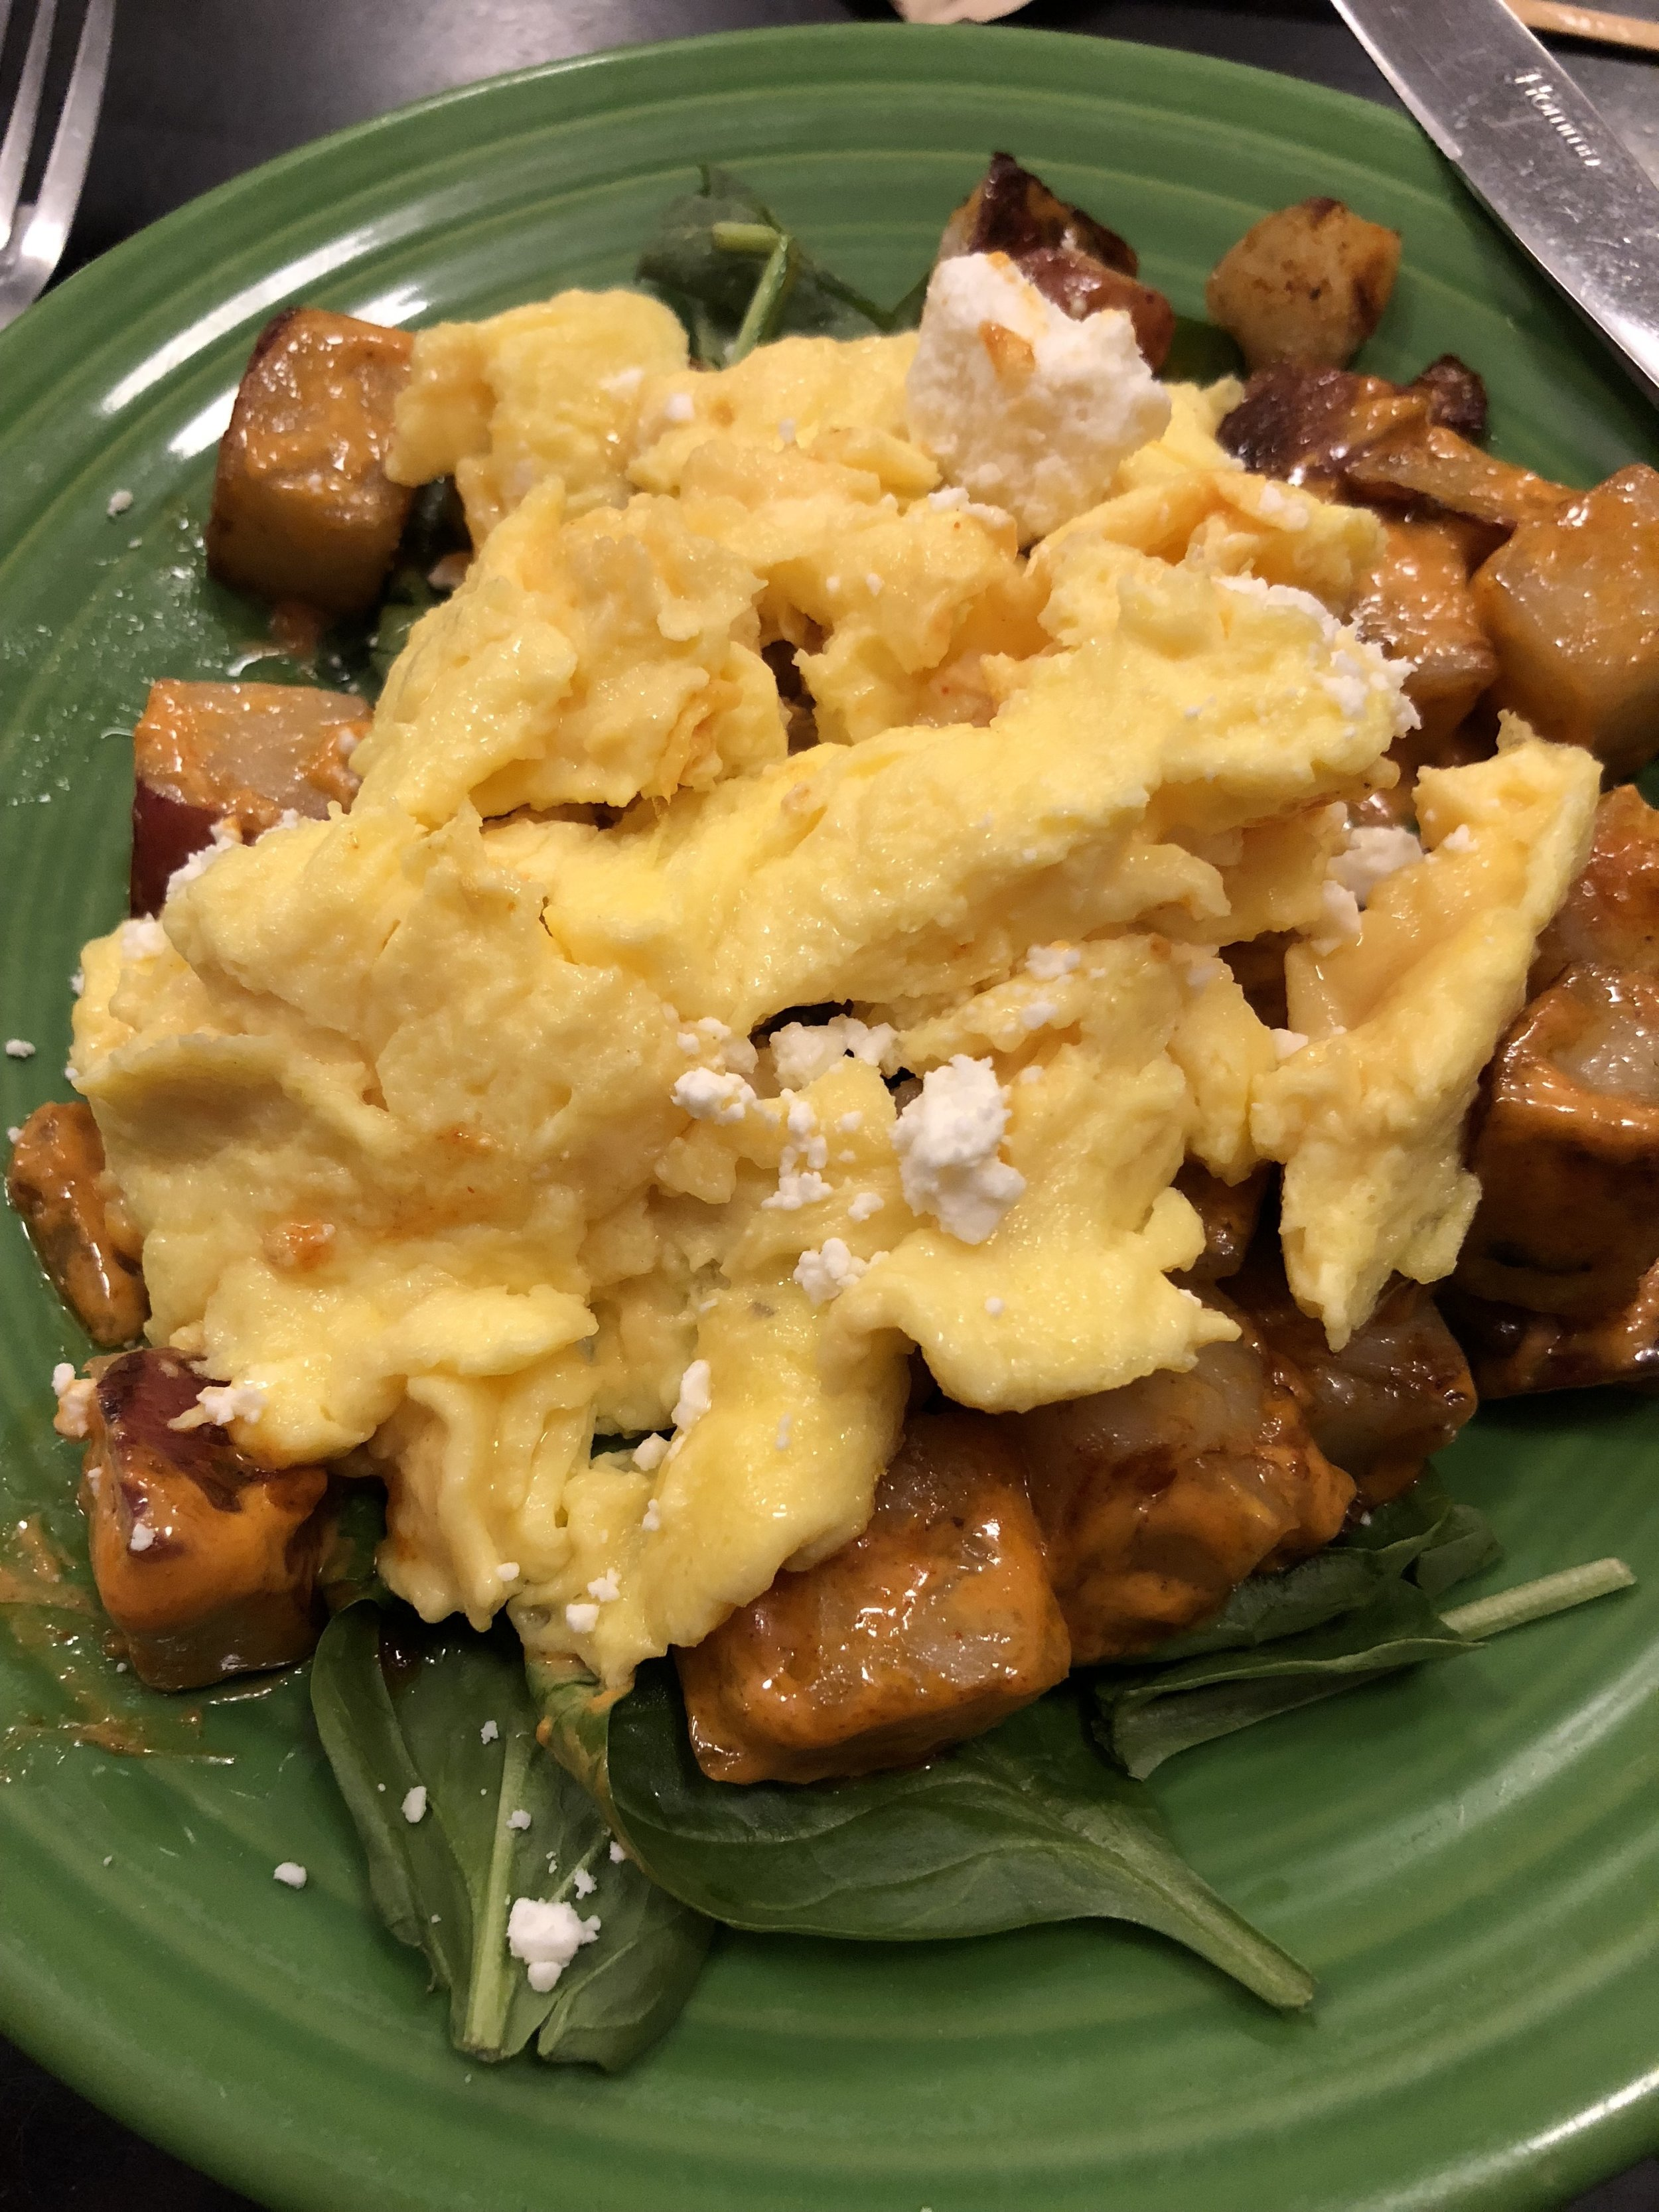 Potatas Bravas, one of the many homemade and delicious breakfast items!